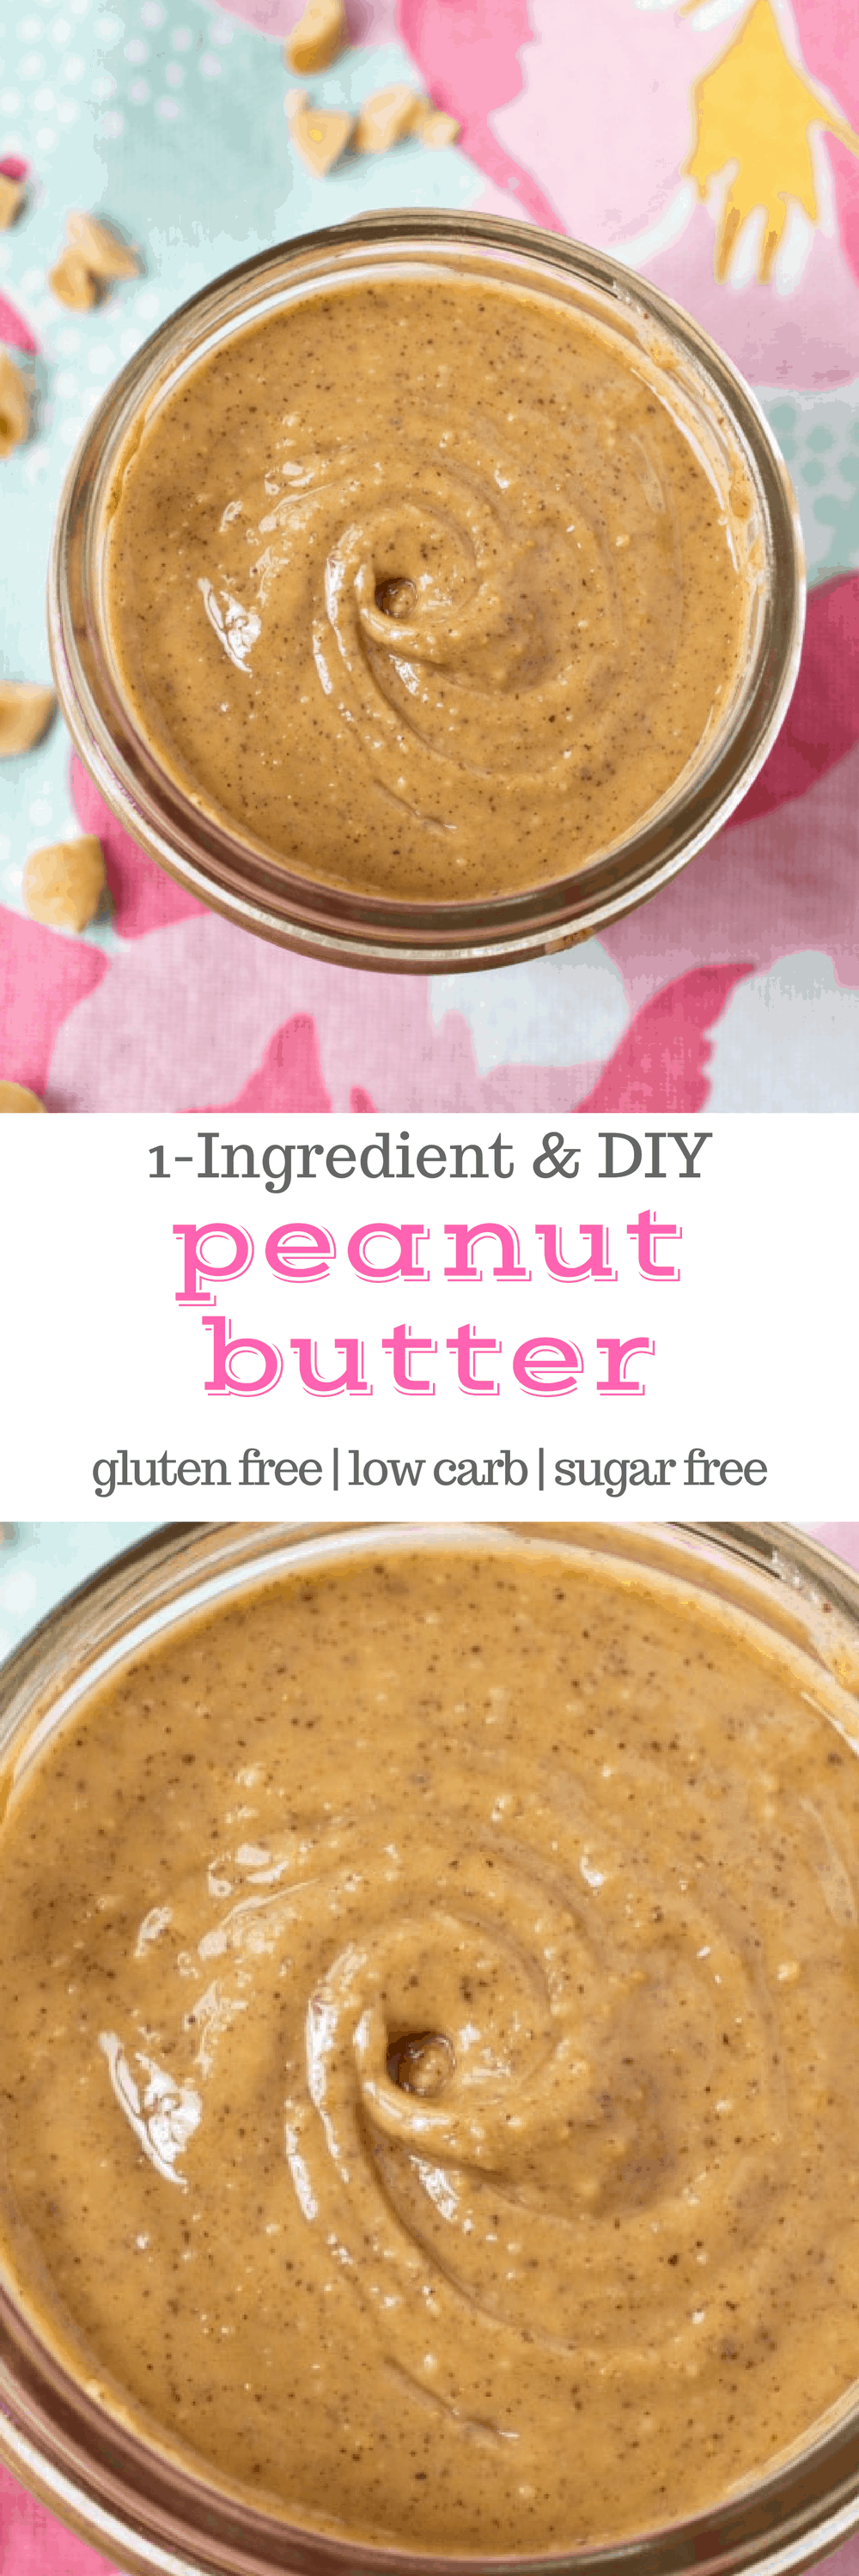 How to make your own peanut butter: It's easier than you think! All it takes is one simple ingredient, and you can have homemade, no-sugar-added, clean eating peanut butter in minutes! #glutenfree #cleaneating #realfood #sugarfree #lowcarb #keto #vegan